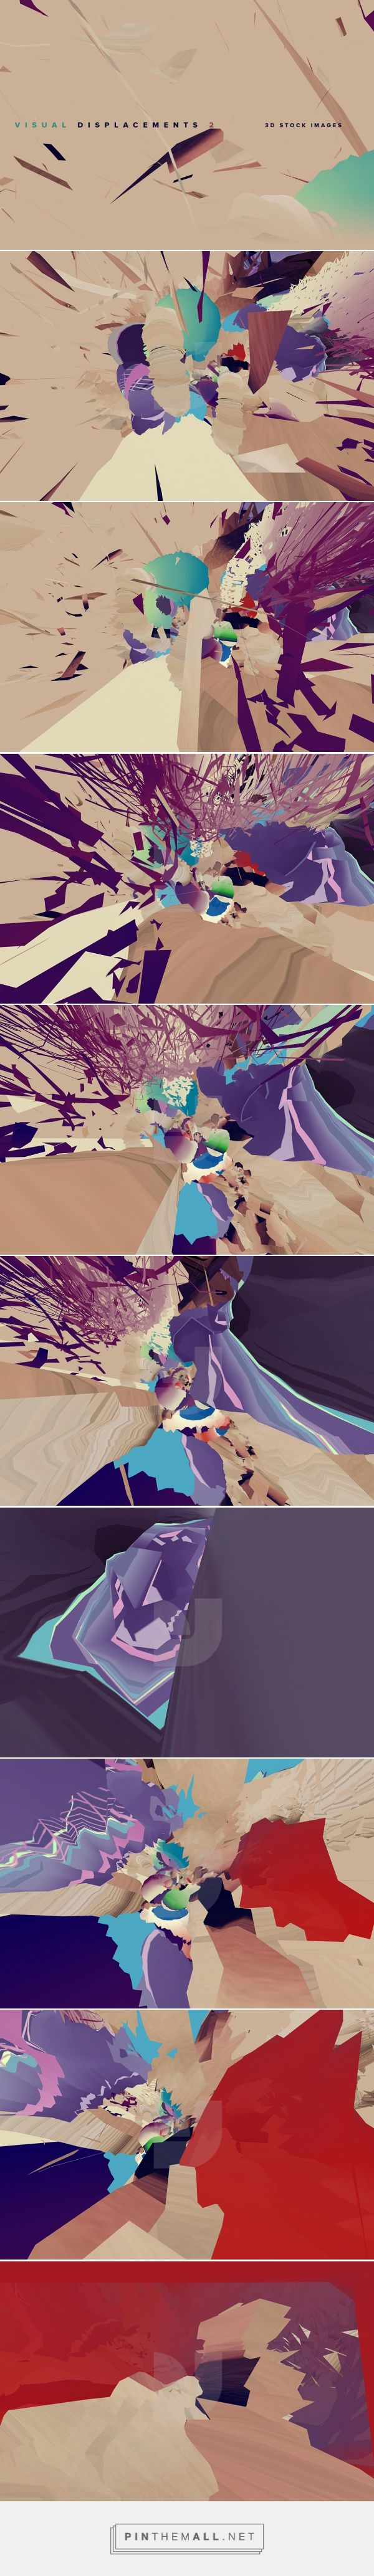 Visual Displacements 2 - Graphics - YouWorkForThem - Designed by YWFT Michael Paul Young - This product download contains 9 files. This is a collection of experimental 3D renders designed to help fill the void behind your layout design. Use these images as backdrops in your print, mobile app, web and or video project. Images are saved as 72 DPI jpegs, but at high resolution pixel sizes of 5000 x 2813 (pixels). (affiliate)